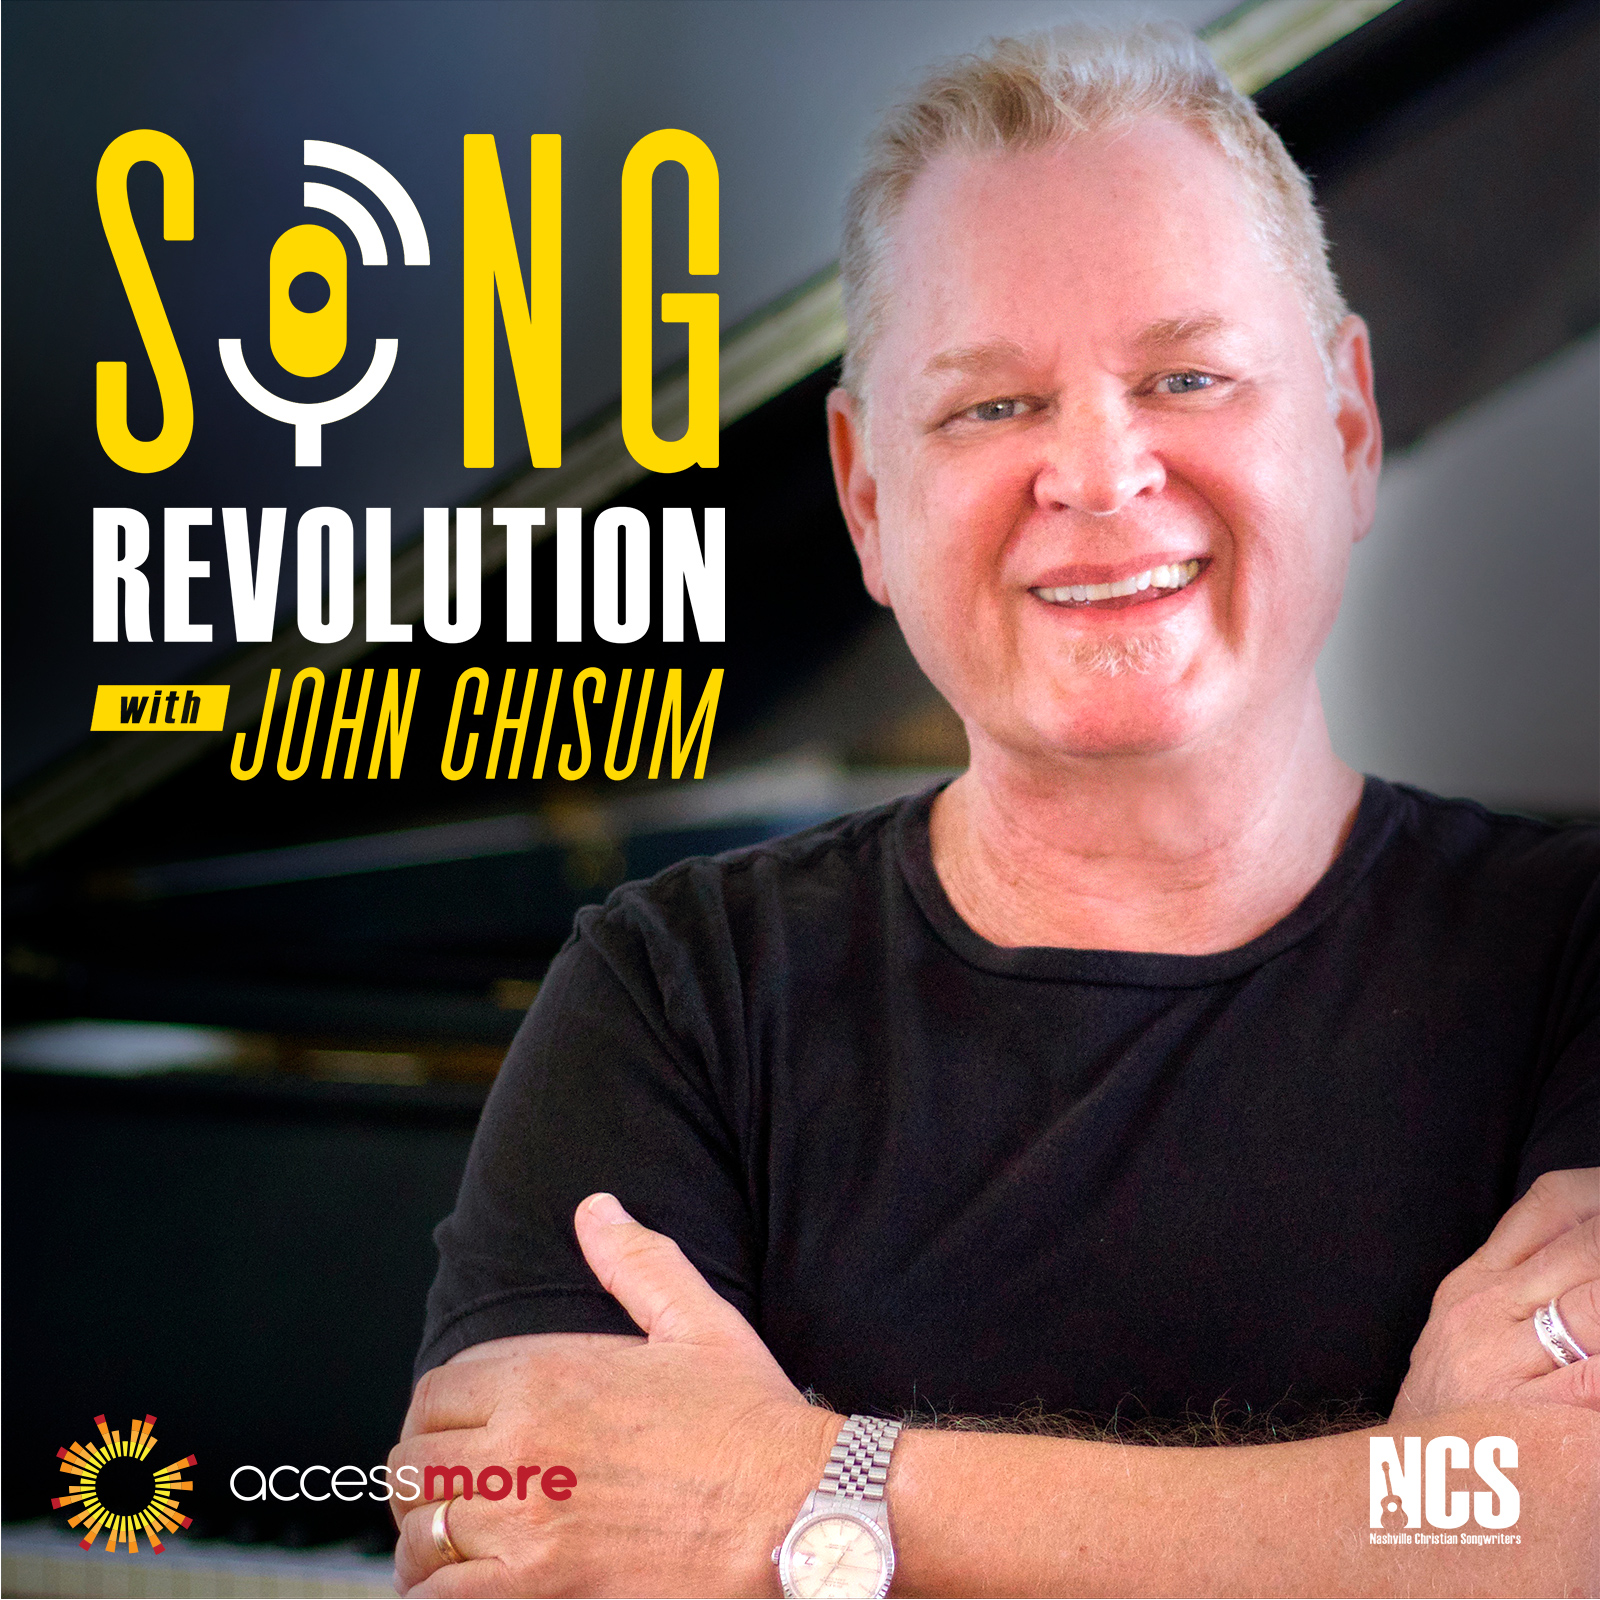 Making it in the Christian Music Industry with A&R Legend John Mays (Centricity Music)